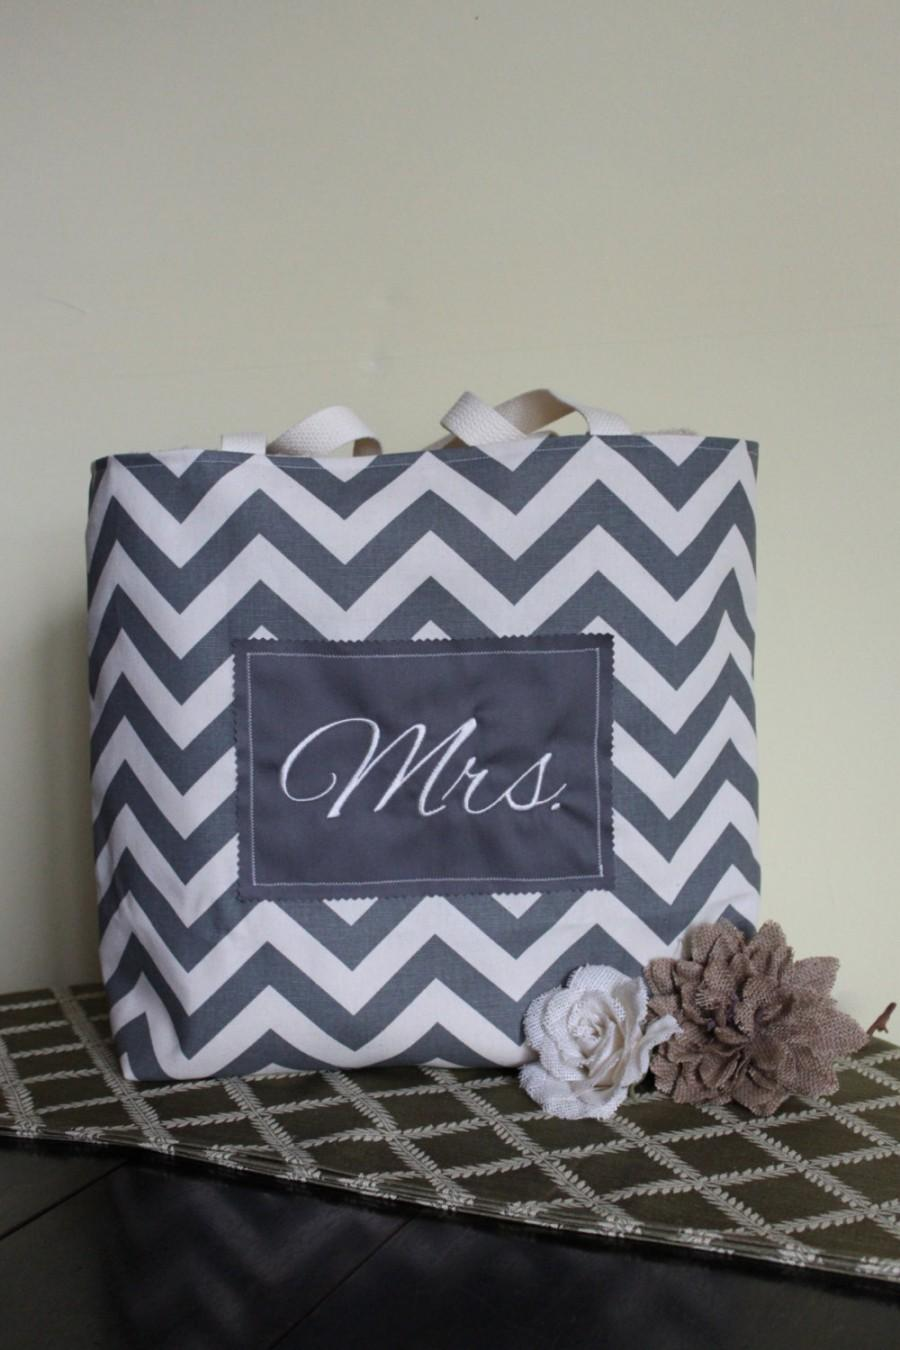 Mariage - Mrs. Embroidered Grey Chevron Tote in Duck Cloth Canvas - Fiance, Bride to be, Bridal Shower, Wedding, Purse, Beach, Gift-Favor-Goodie Bag